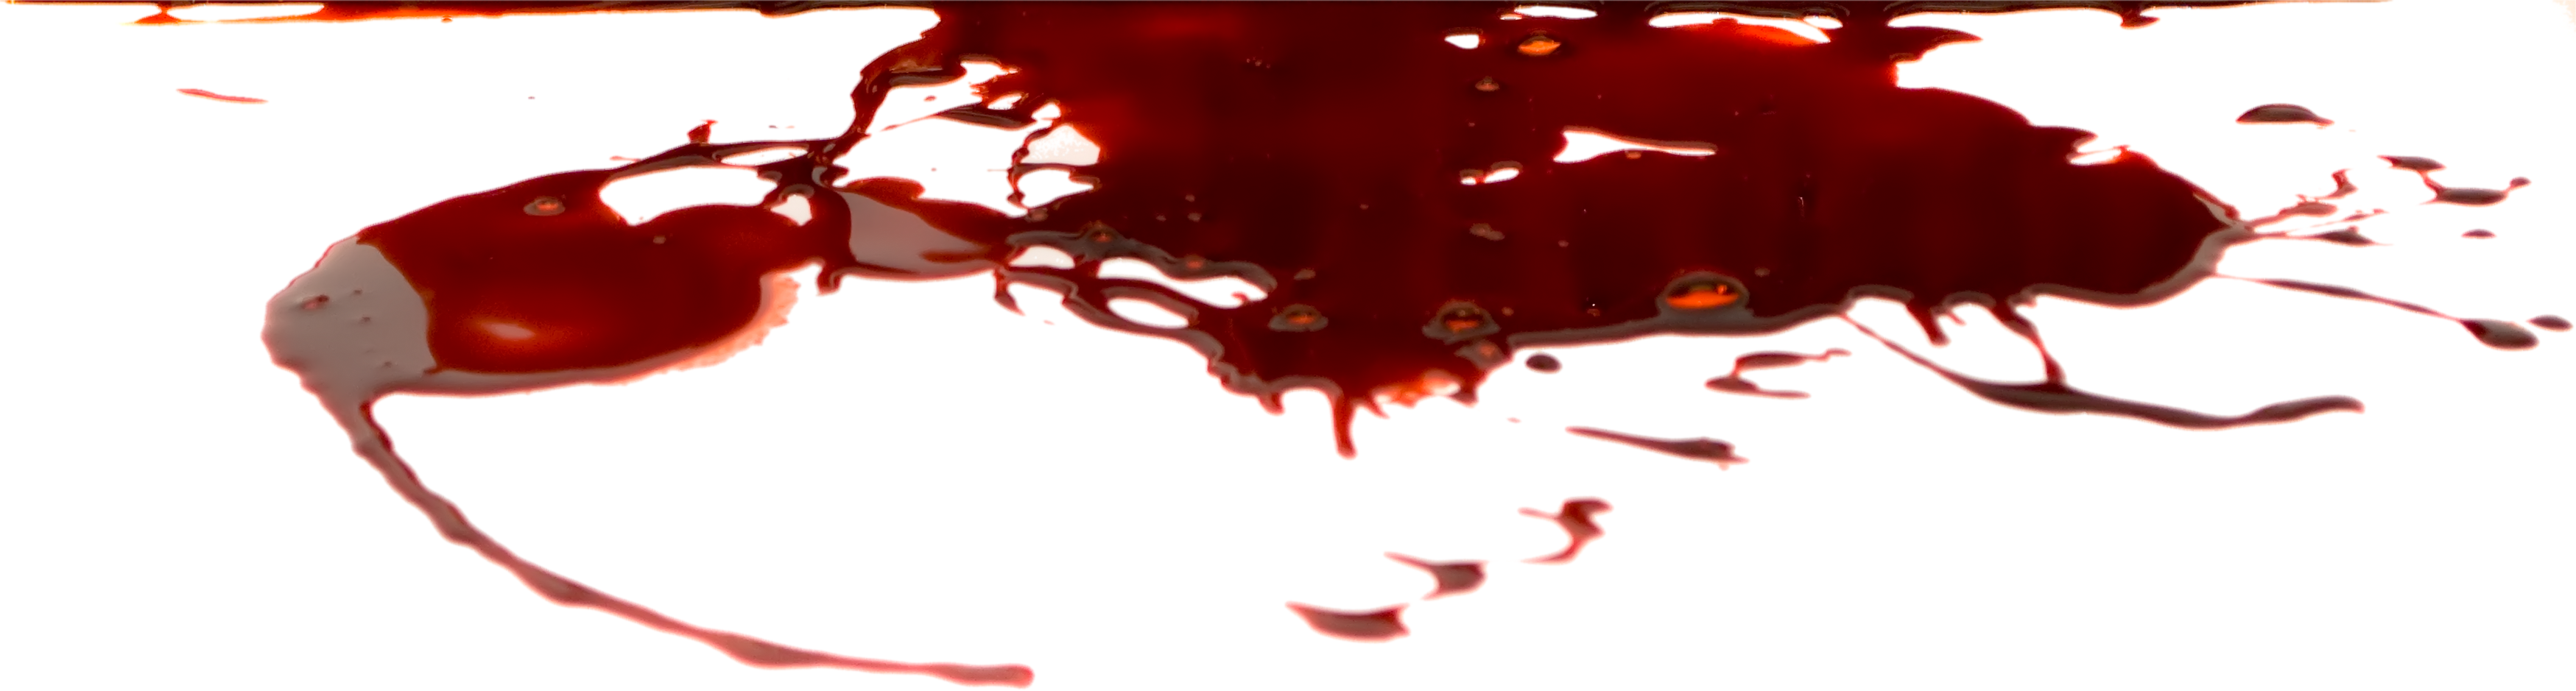 Blood on floor png. Images free download splashes